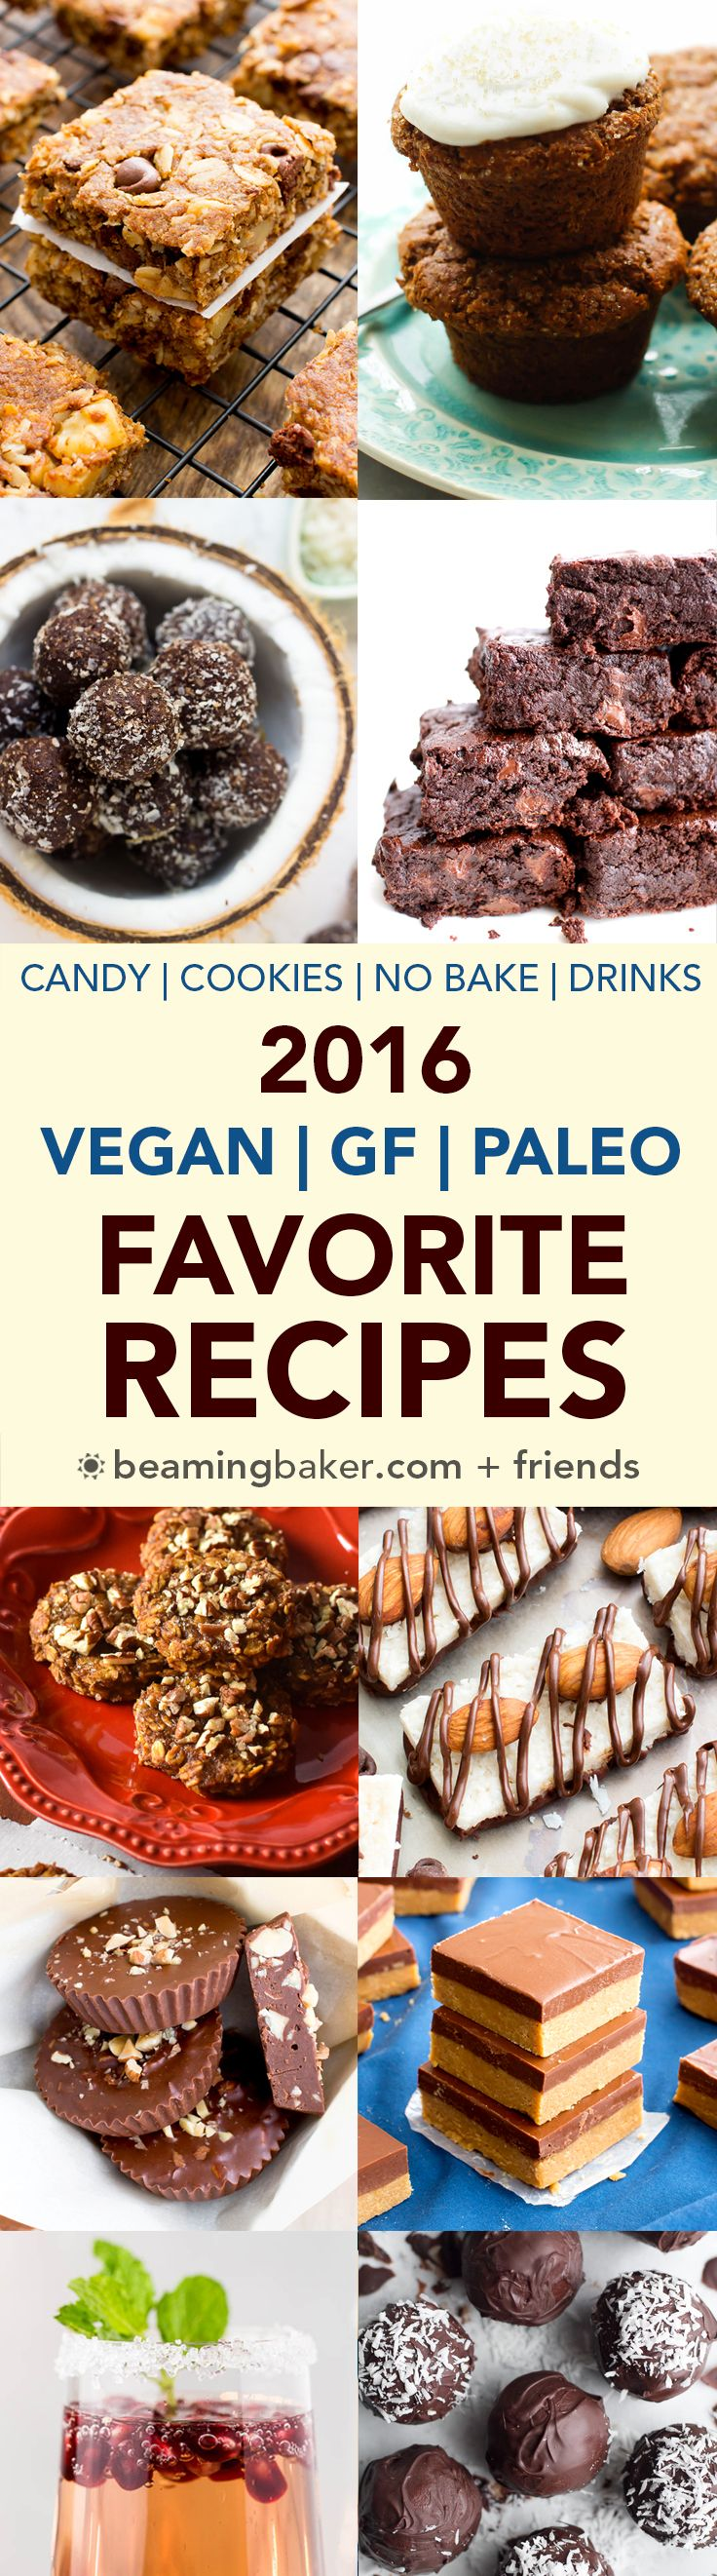 A collection of my favorite recipes, featuring gluten free, paleo, vegan and dairy-free treats from Beaming Baker and around the web.